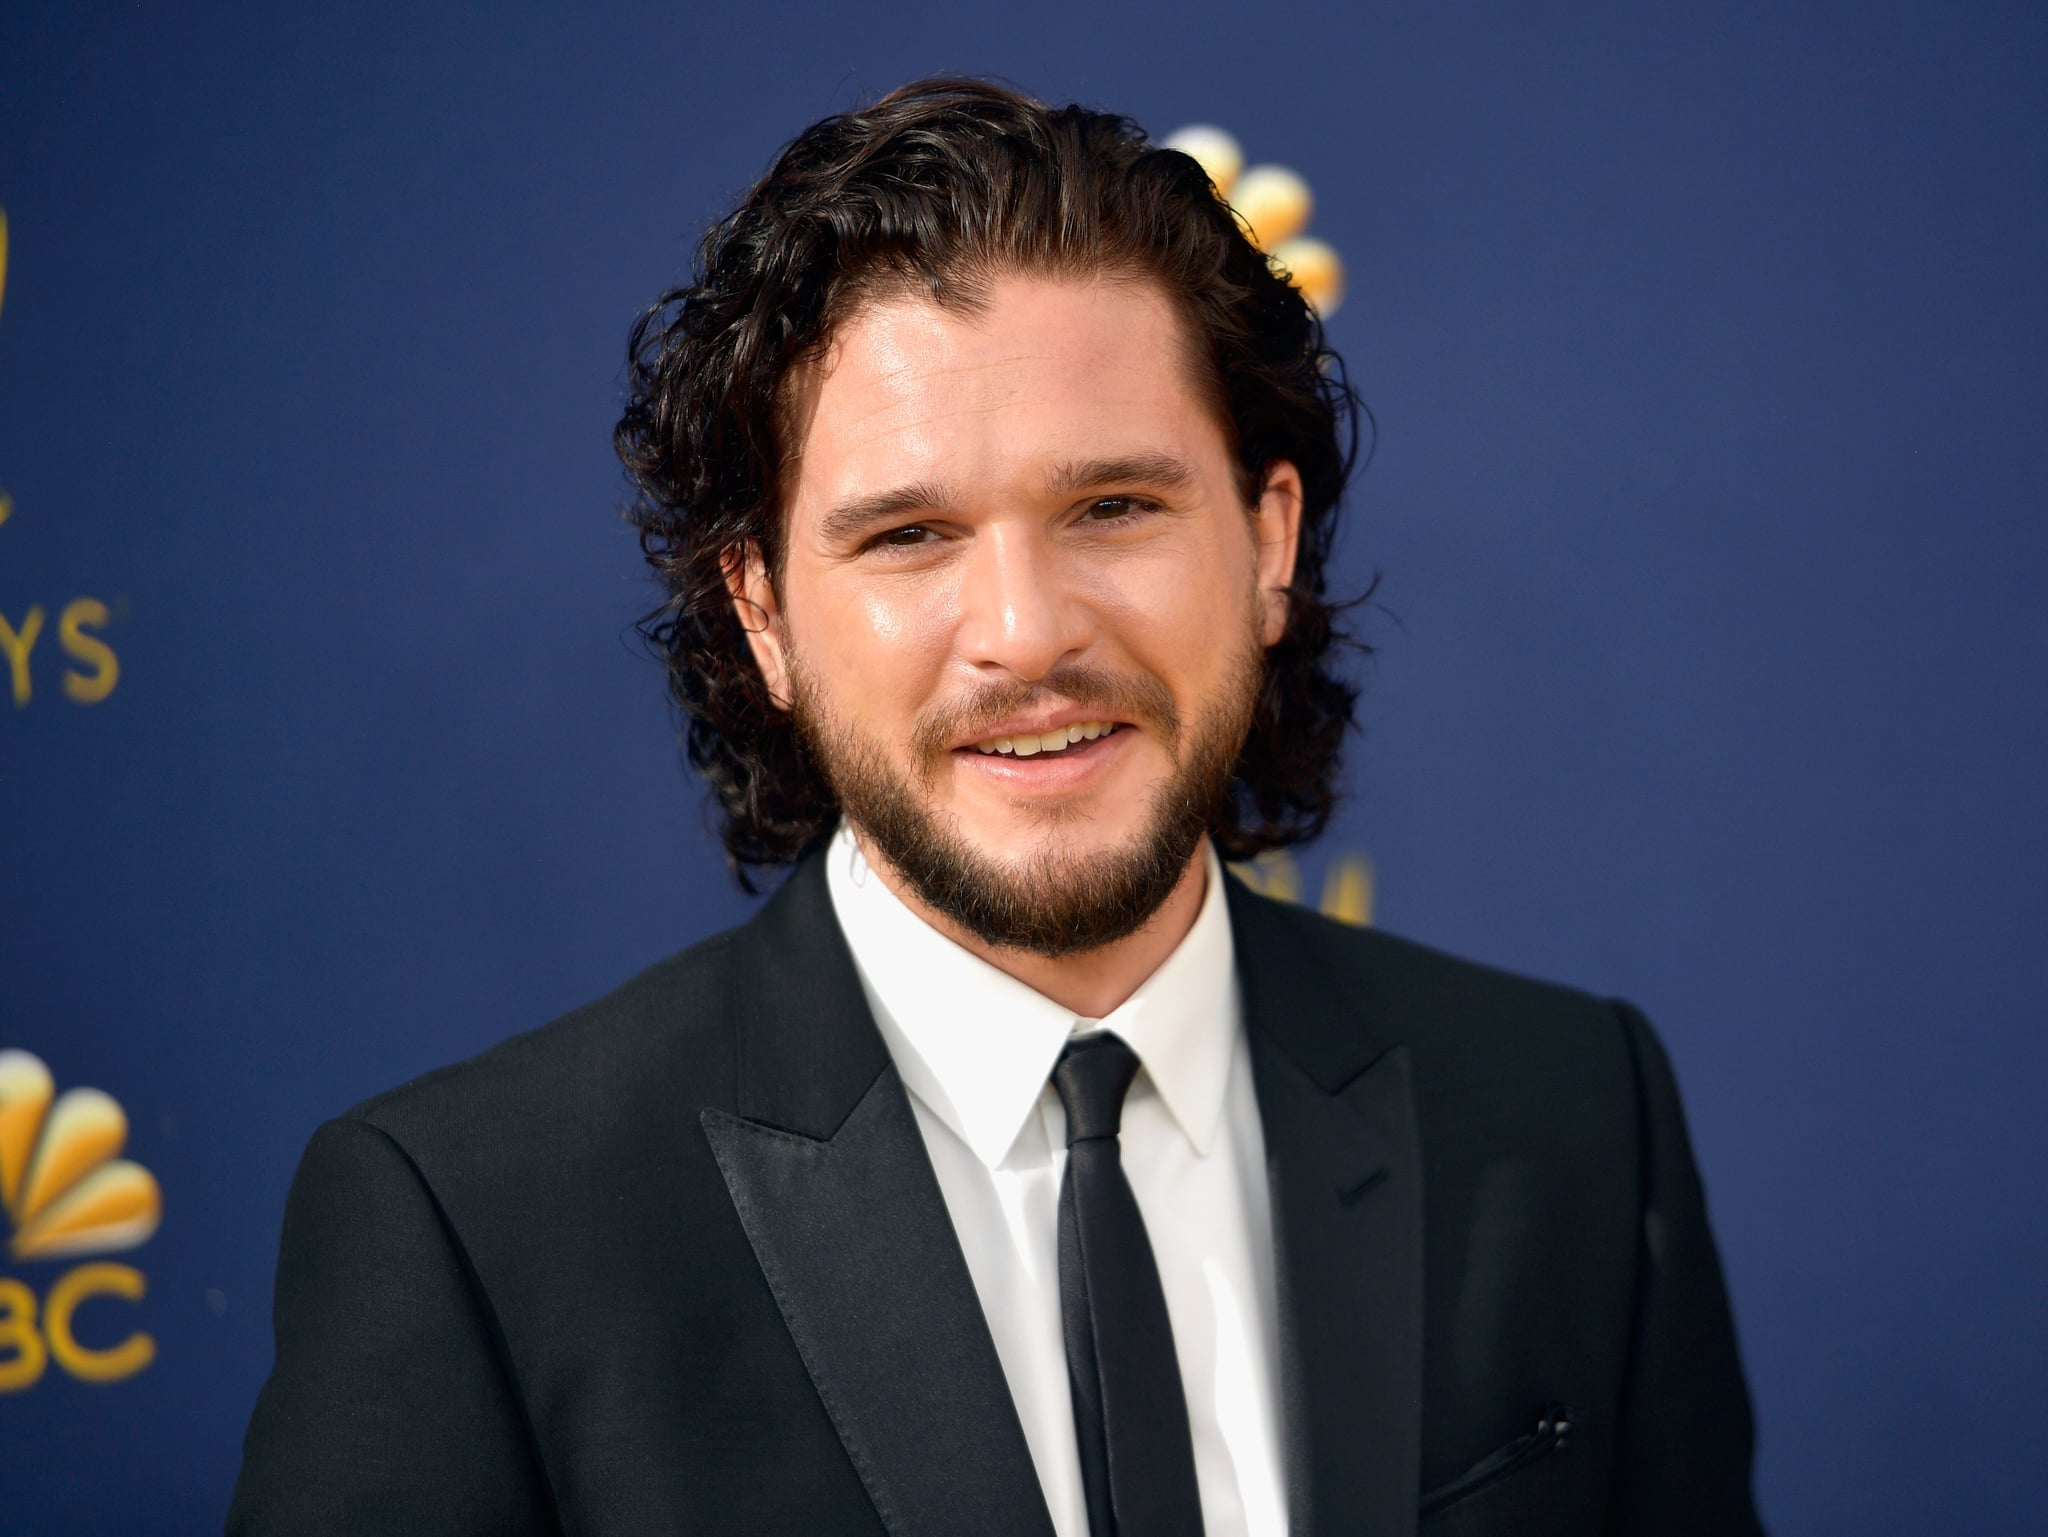 LOS ANGELES, CA - SEPTEMBER 17:  Kit Harington attends the 70th Emmy Awards at Microsoft Theater on September 17, 2018 in Los Angeles, California.  (Photo by Matt Winkelmeyer/Getty Images)